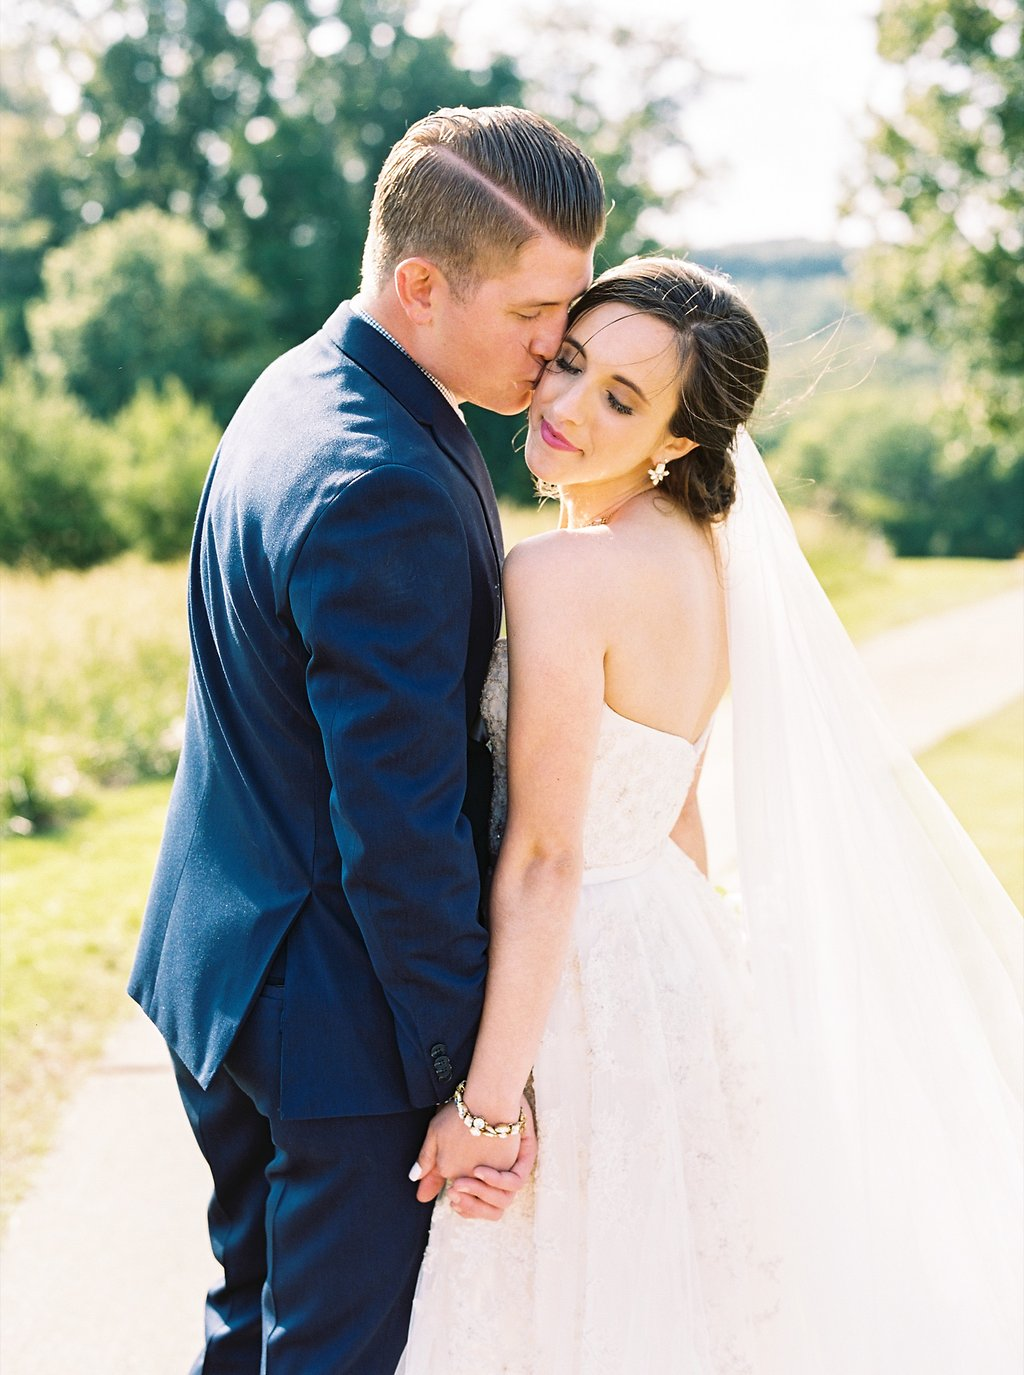 Sweet Newlywed Photos after our Wedding Ceremony | Blush and Navy Wedding with Fuchsia, French Blue and Gold Accents | Simply Jessica Marie's Southern Wedding at Gettysvue Golf Course and Country Club in Knoxville Tennessee | Photo by Perry Vaile Photography